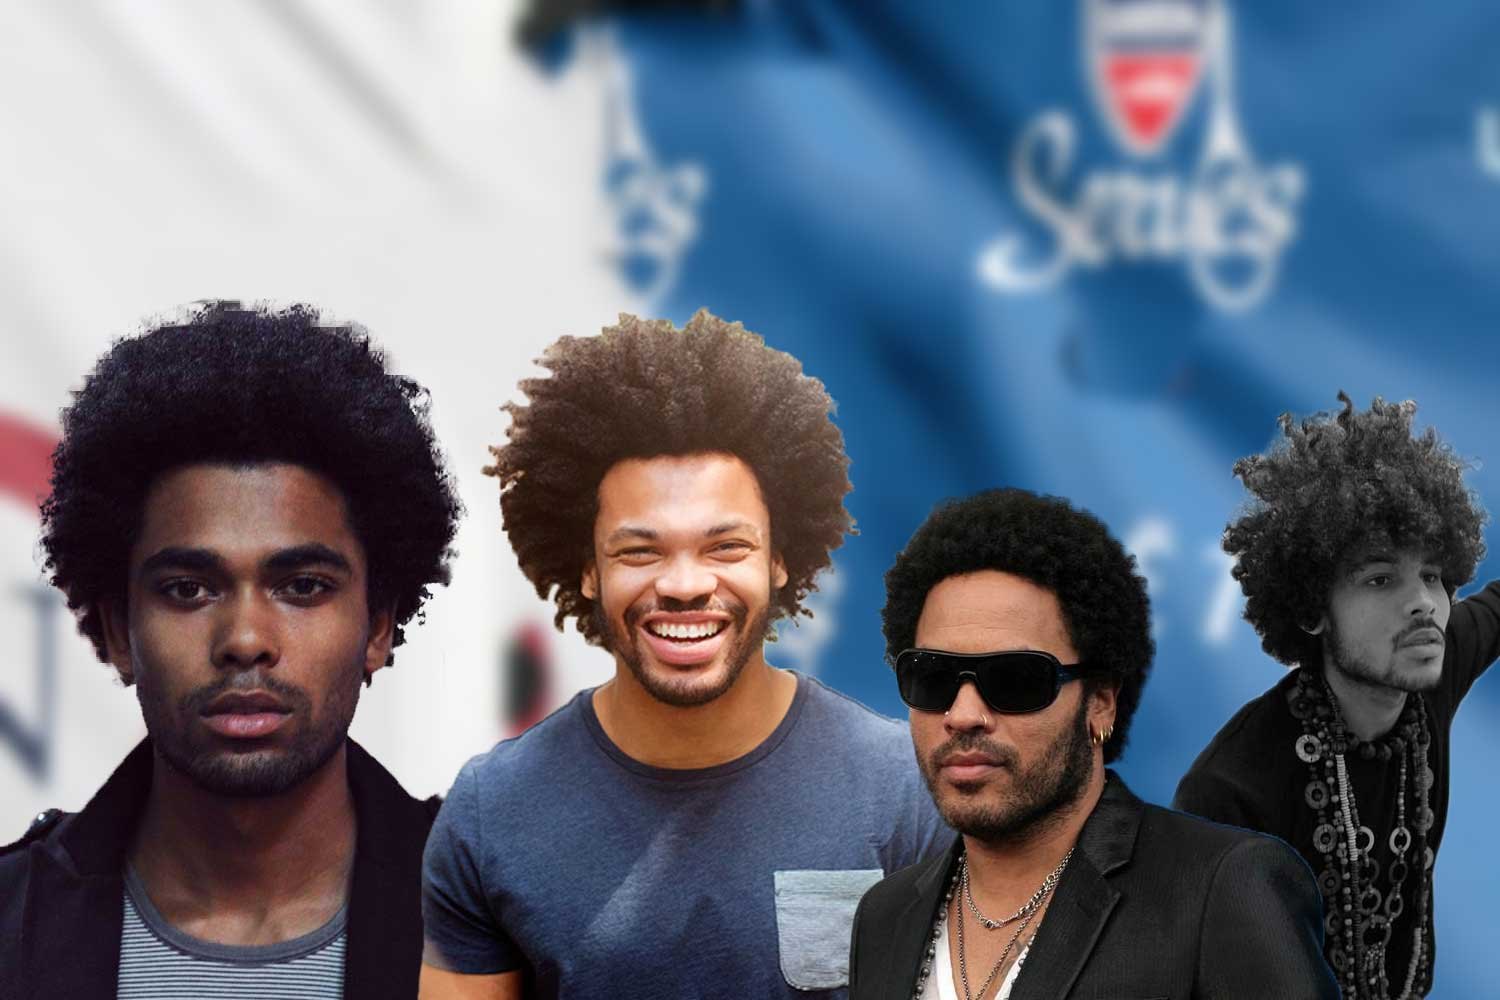 Cool Black Male Afro Hairstyles Get Natural Looks Hairstyles